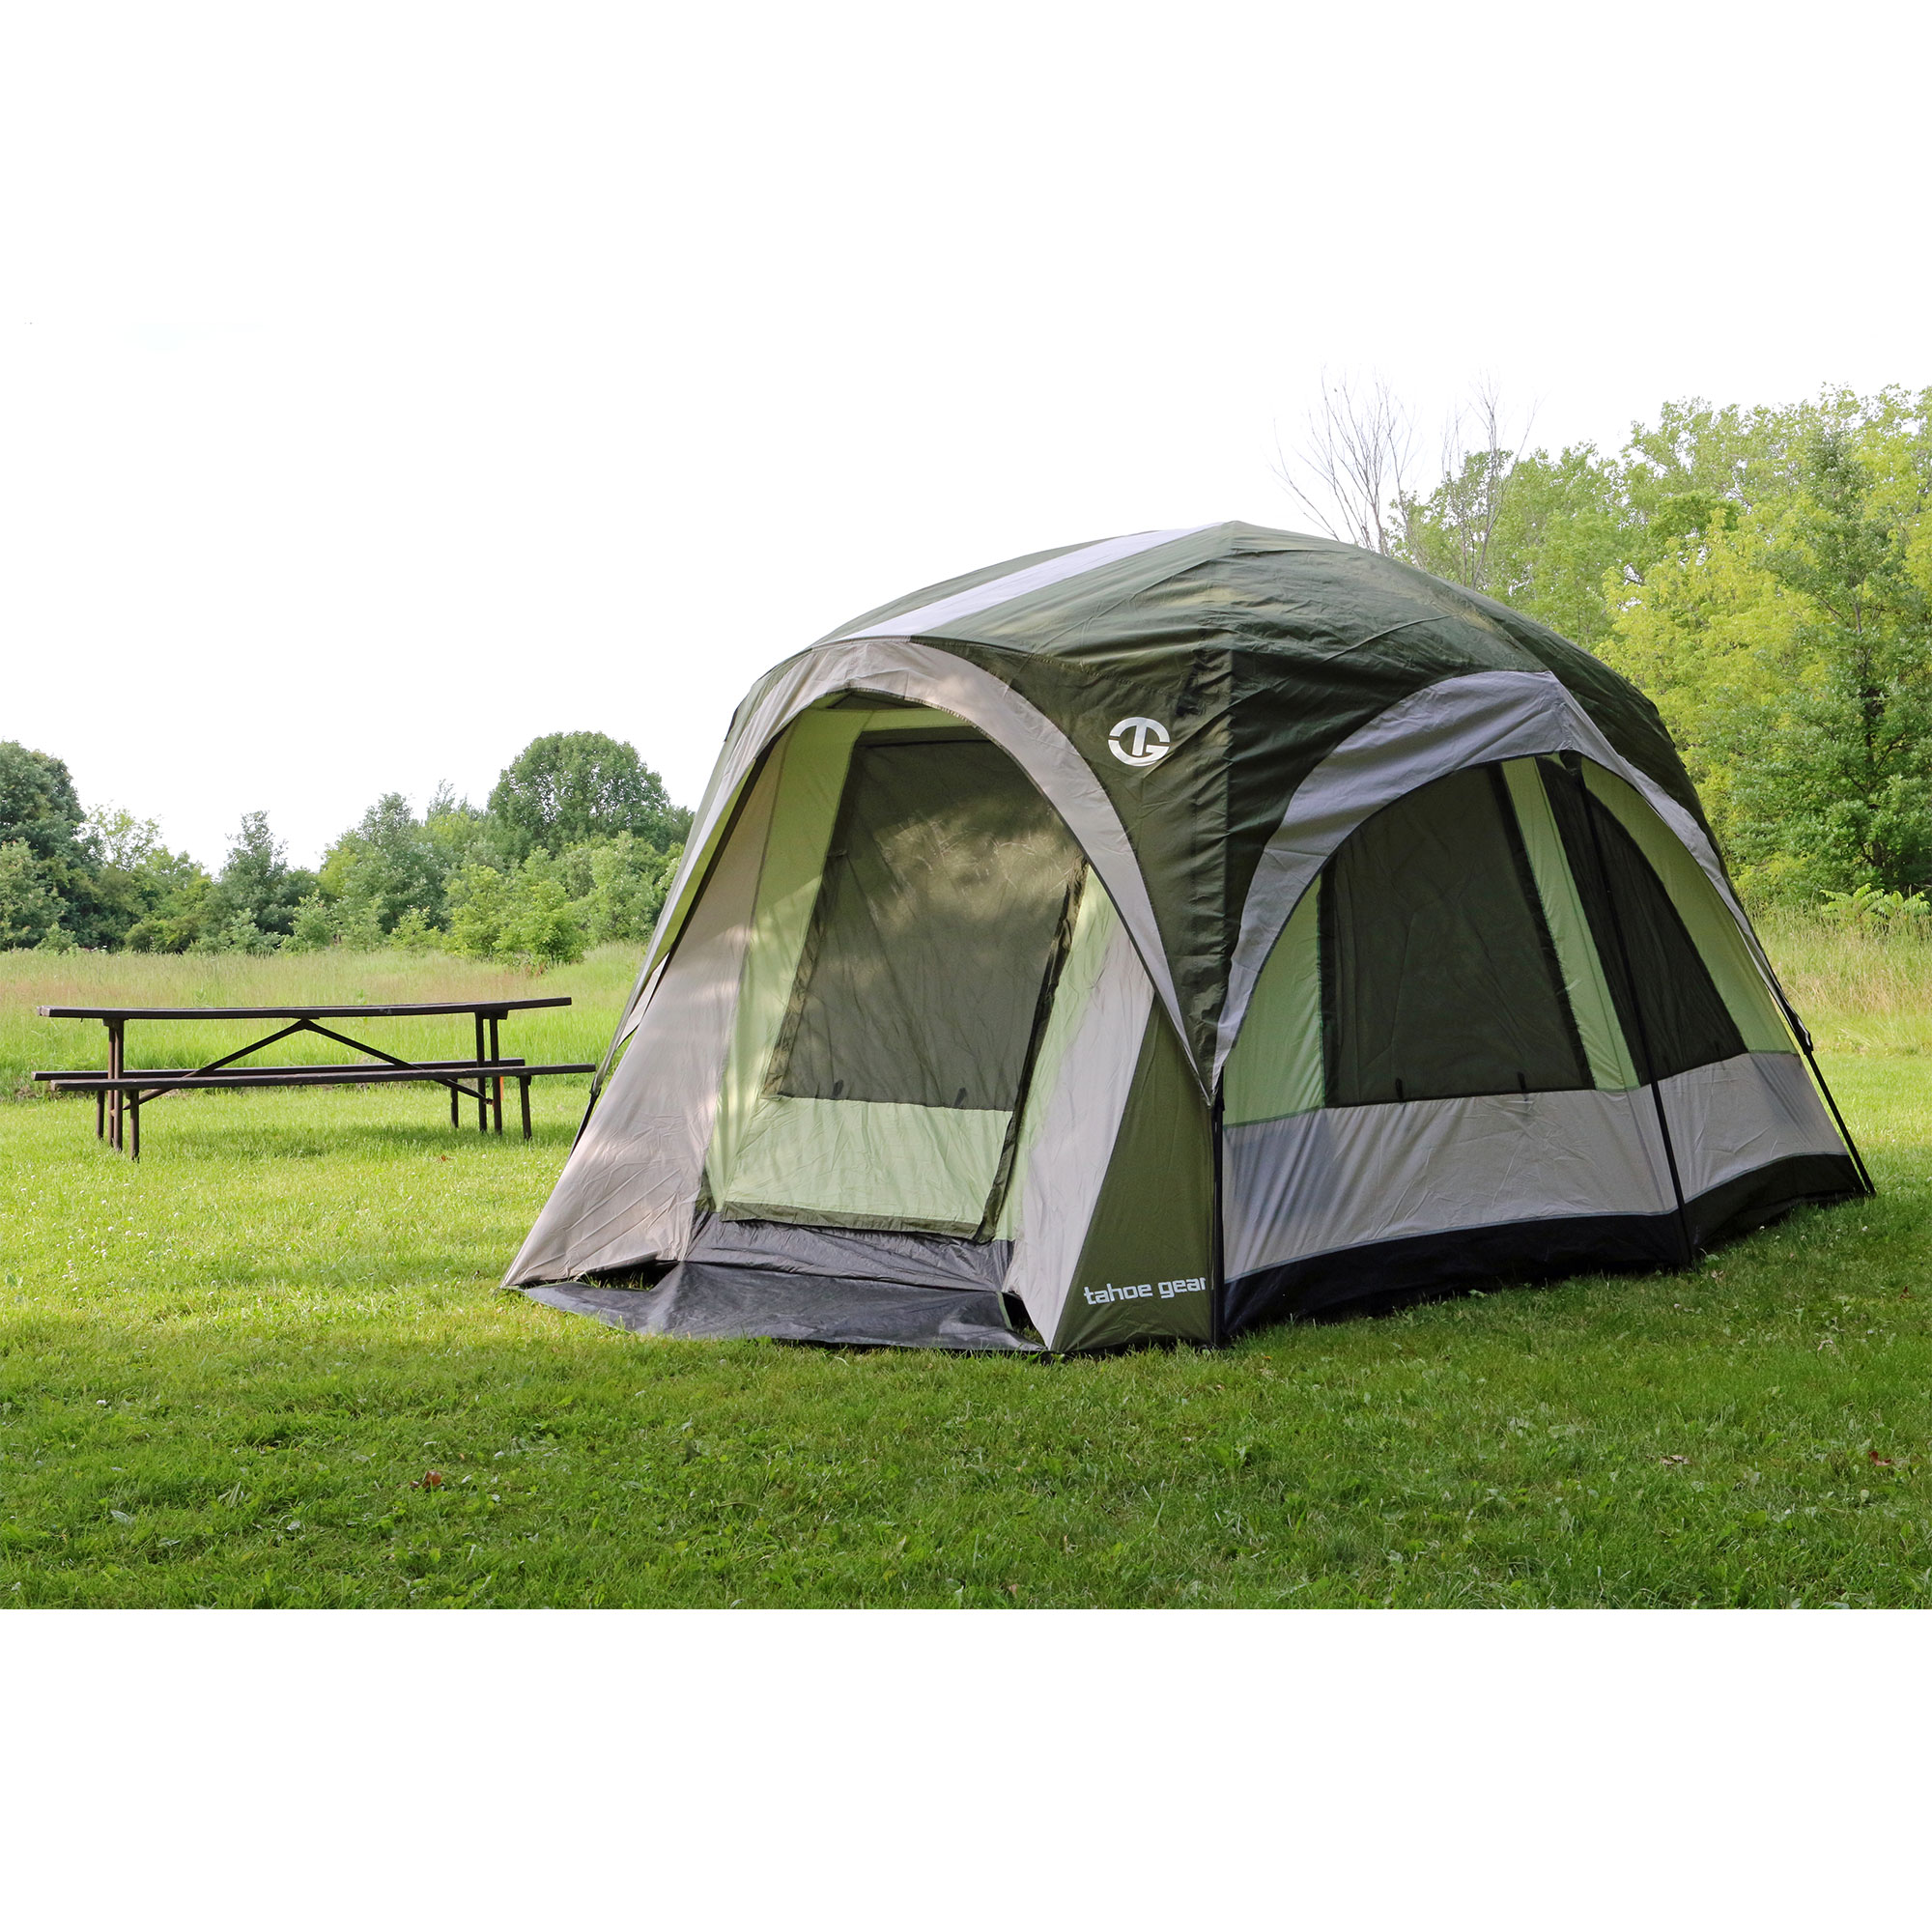 Green//White Tahoe Gear Jasper 7 Person Family Cabin Dome Outdoor Camping Tent